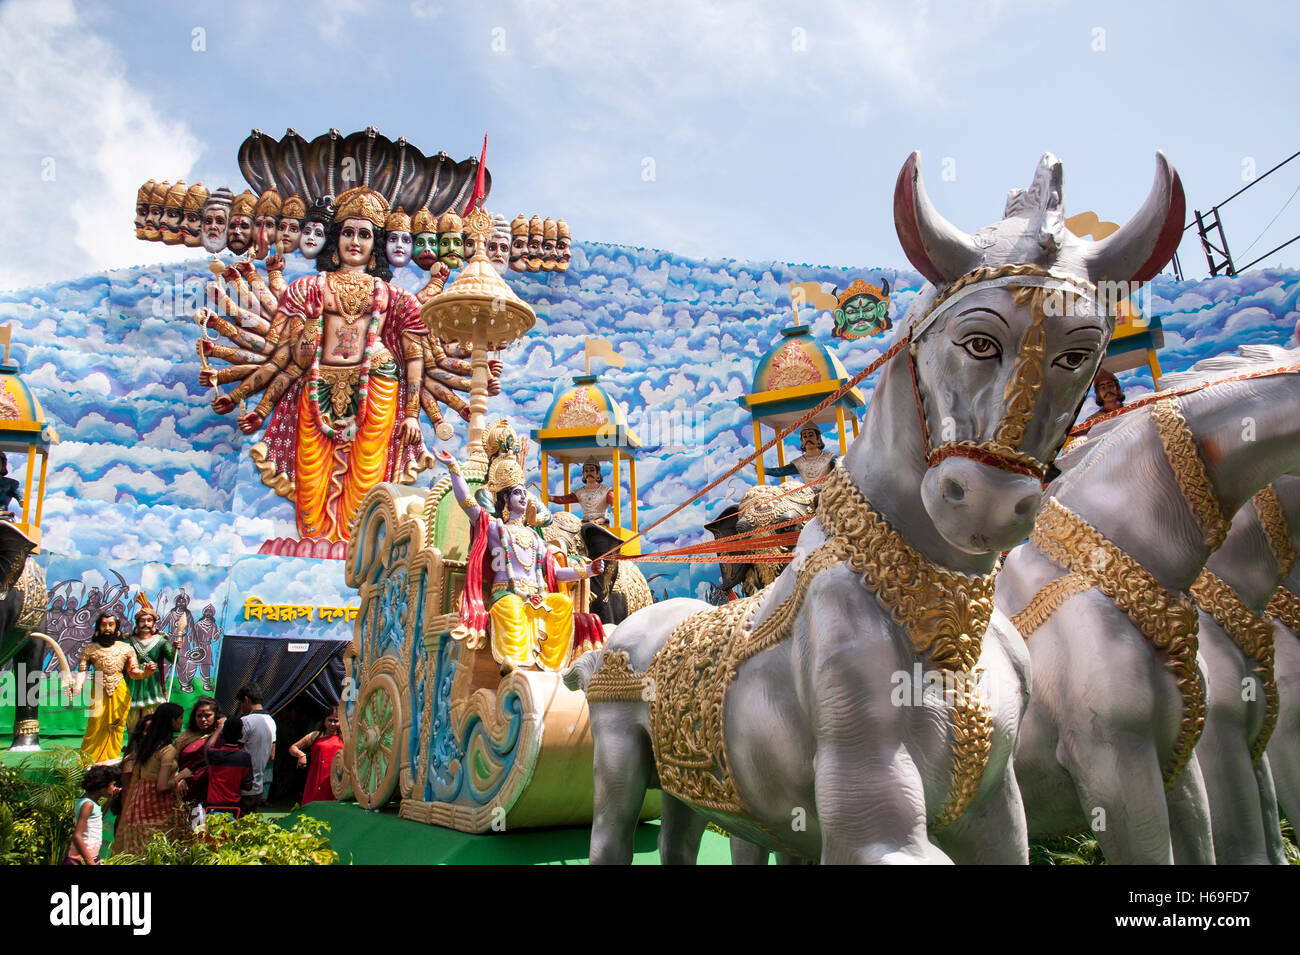 Puja pandal stock photos puja pandal stock images alamy idol of krishnas universal form at nagar bazaar durga puja pandal kolkata west bengal india altavistaventures Choice Image